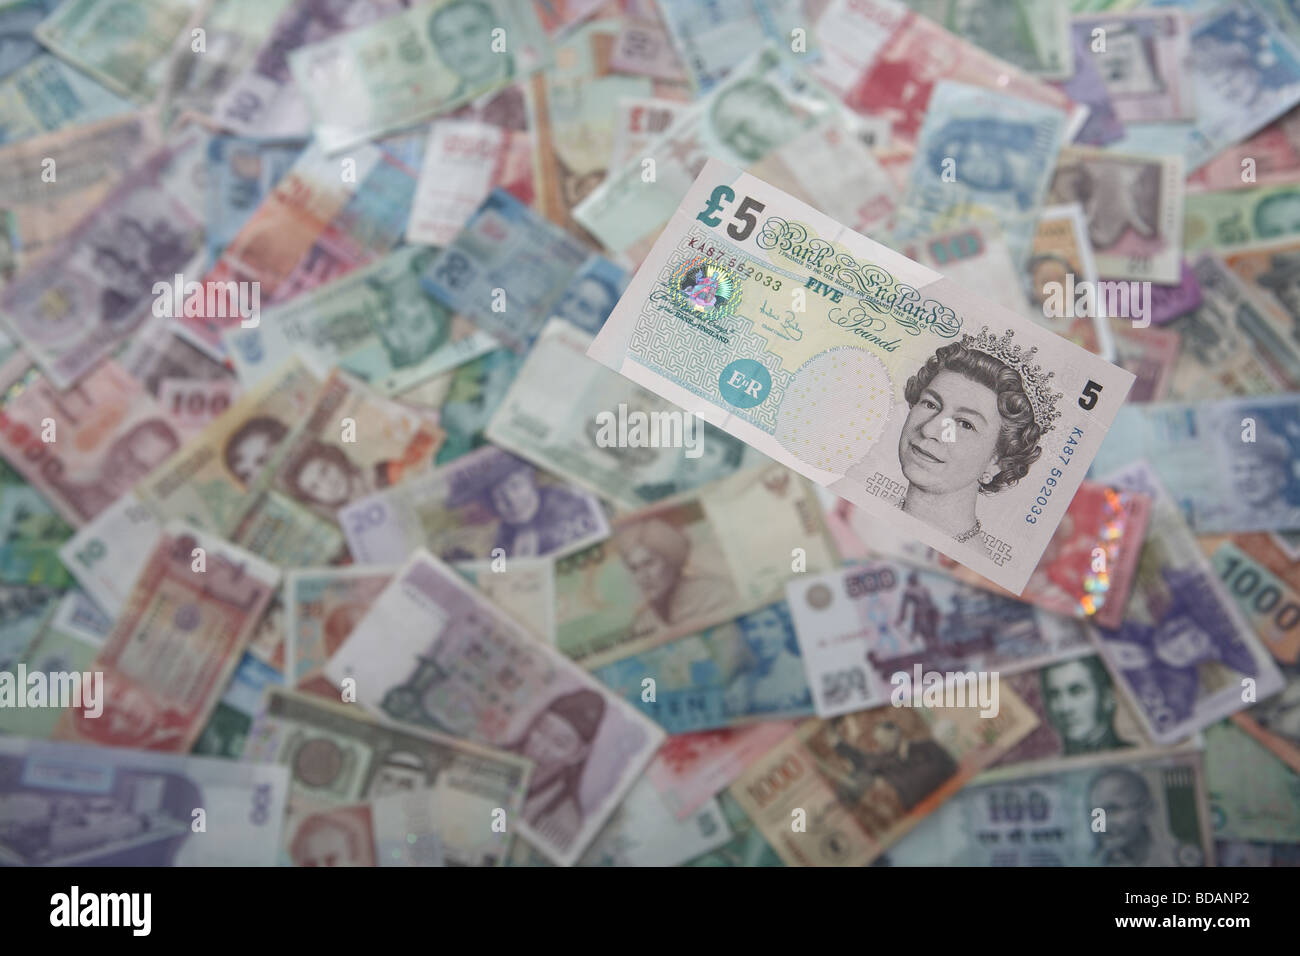 A British Five British Pound note on a soft background of international currencies - Stock Image